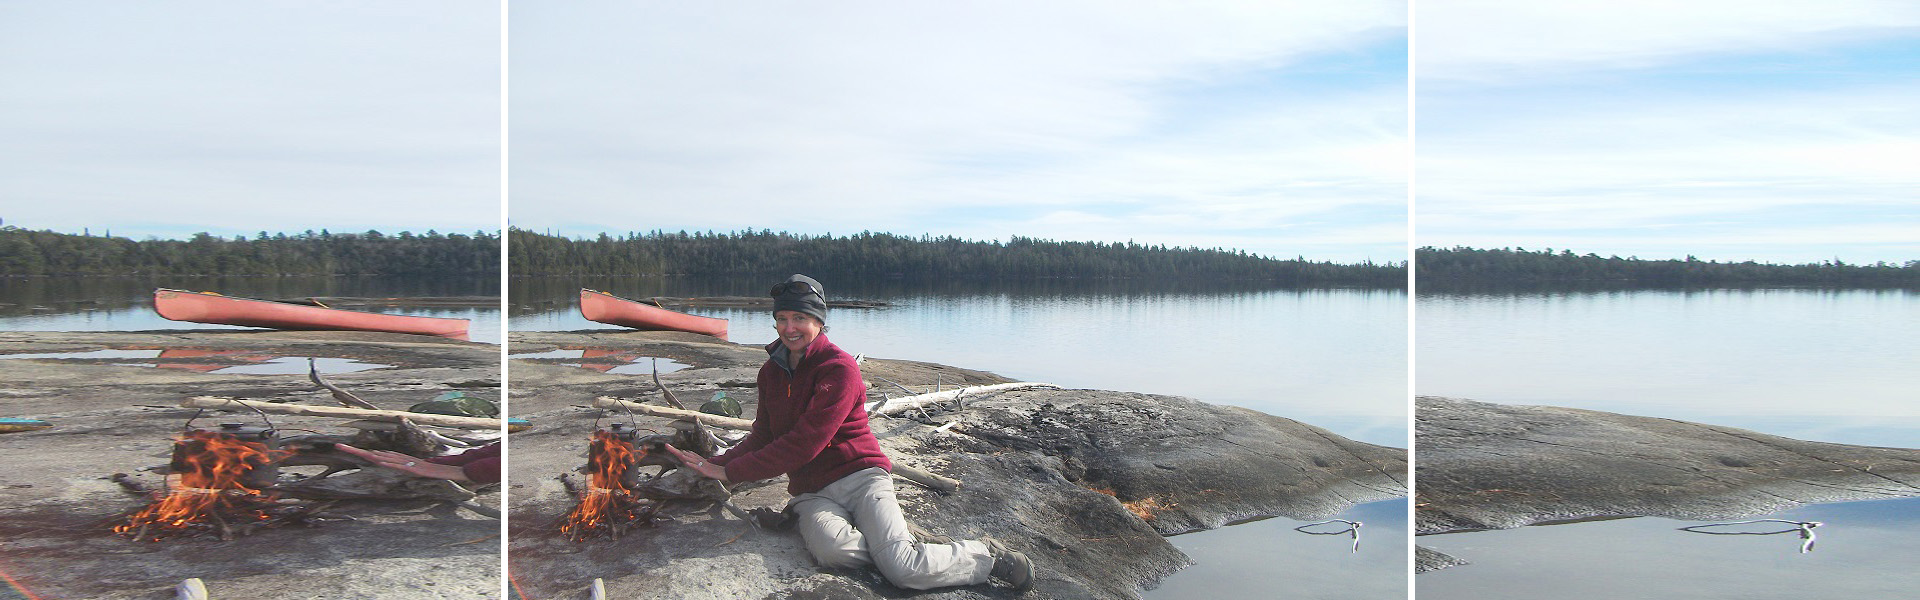 Photograph of Lise Sorenson sitting next to a campfire with a red canoe in the background